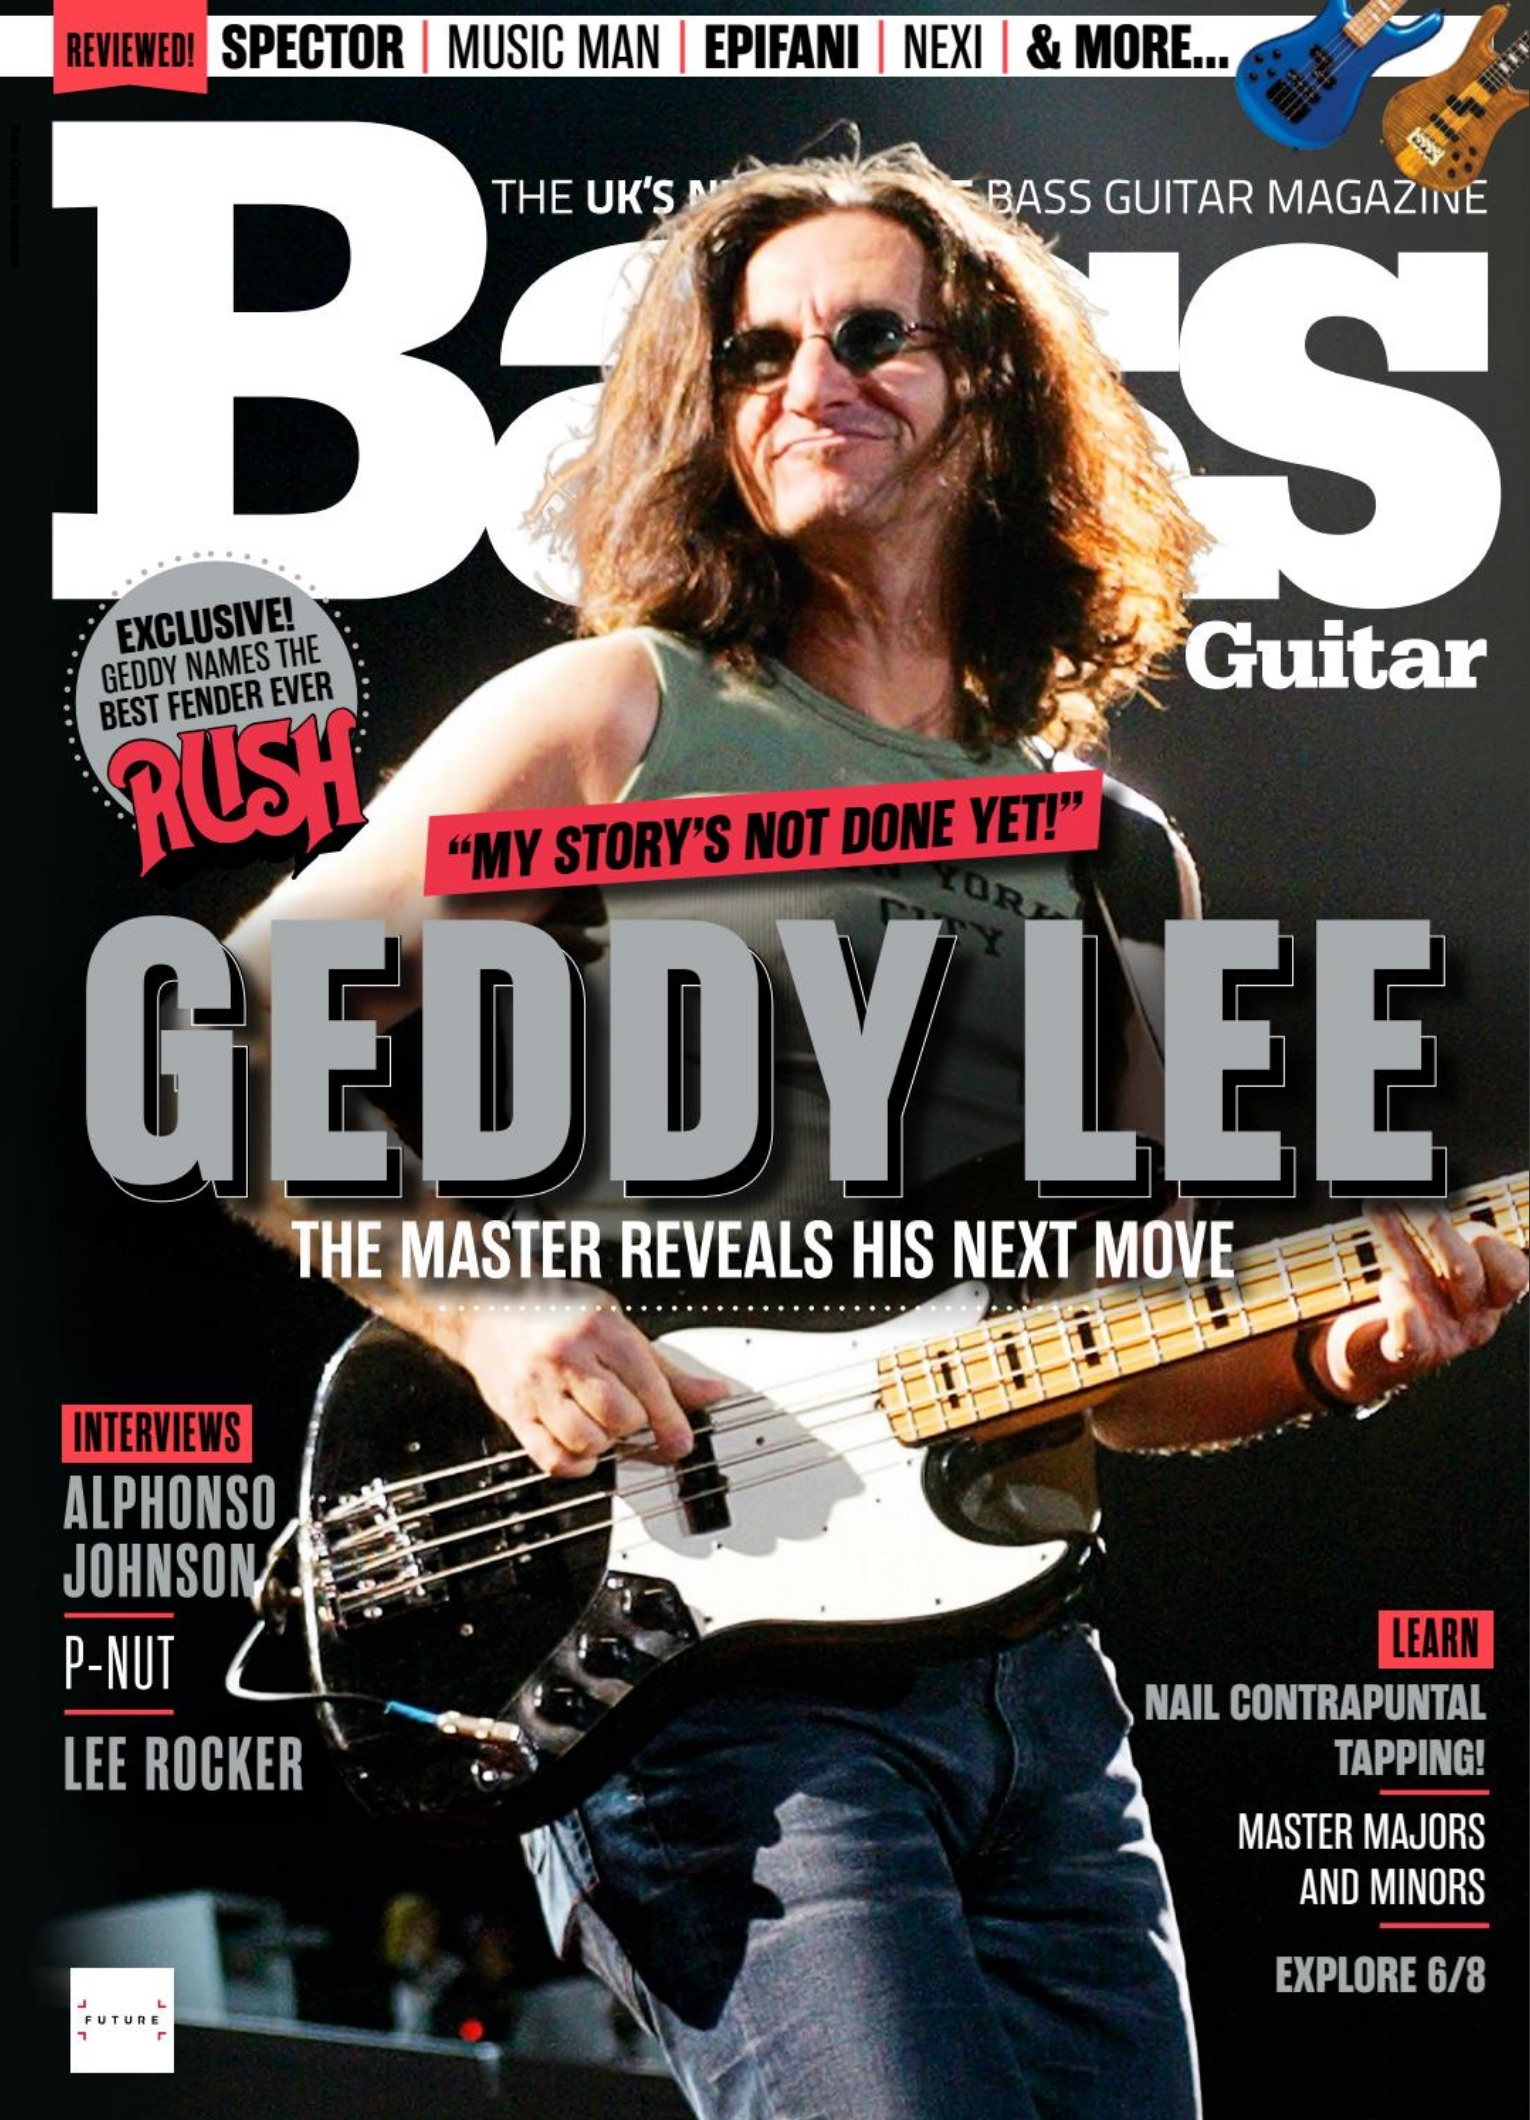 Geddy Lee Featured on the Cover of Bass Guitar Magazine - Talks About the Future